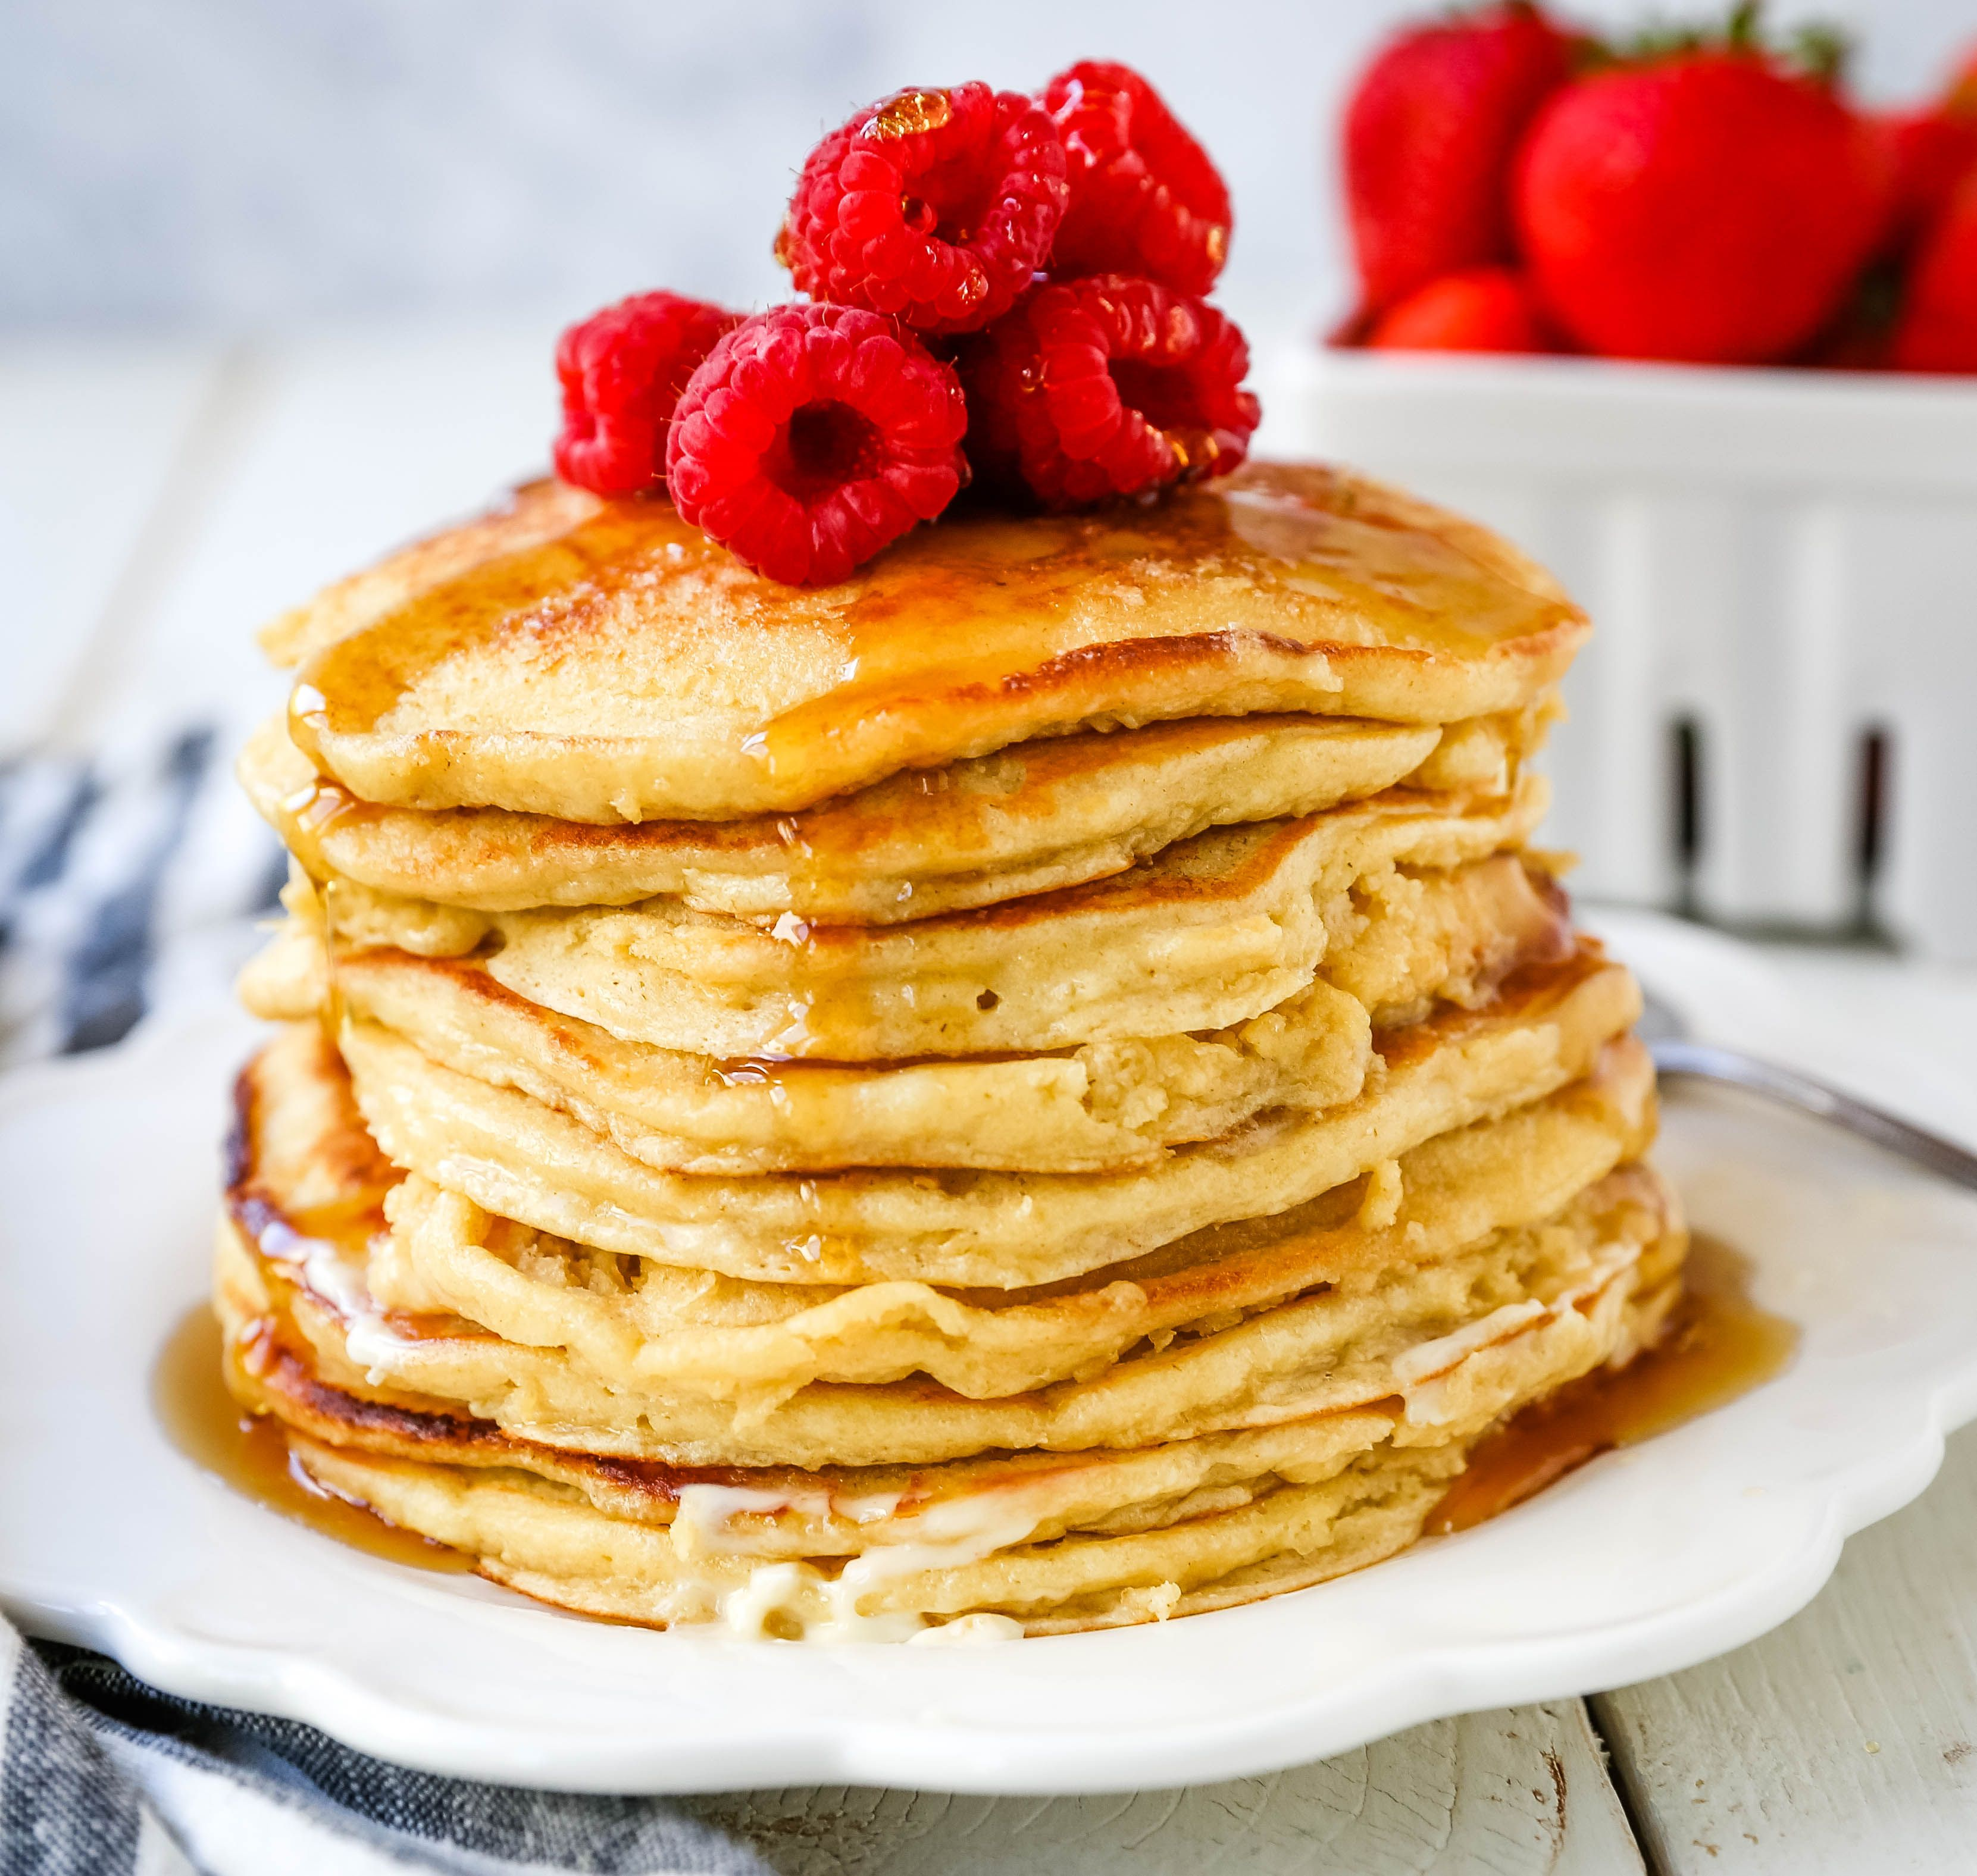 Cottage Cheese Pancakes High Protein Gluten Free Cottage Cheese Pancakes Made A Healthy Filling Cottage Cheese Pancakes Oatmeal Cottage Cheese Pancakes Food